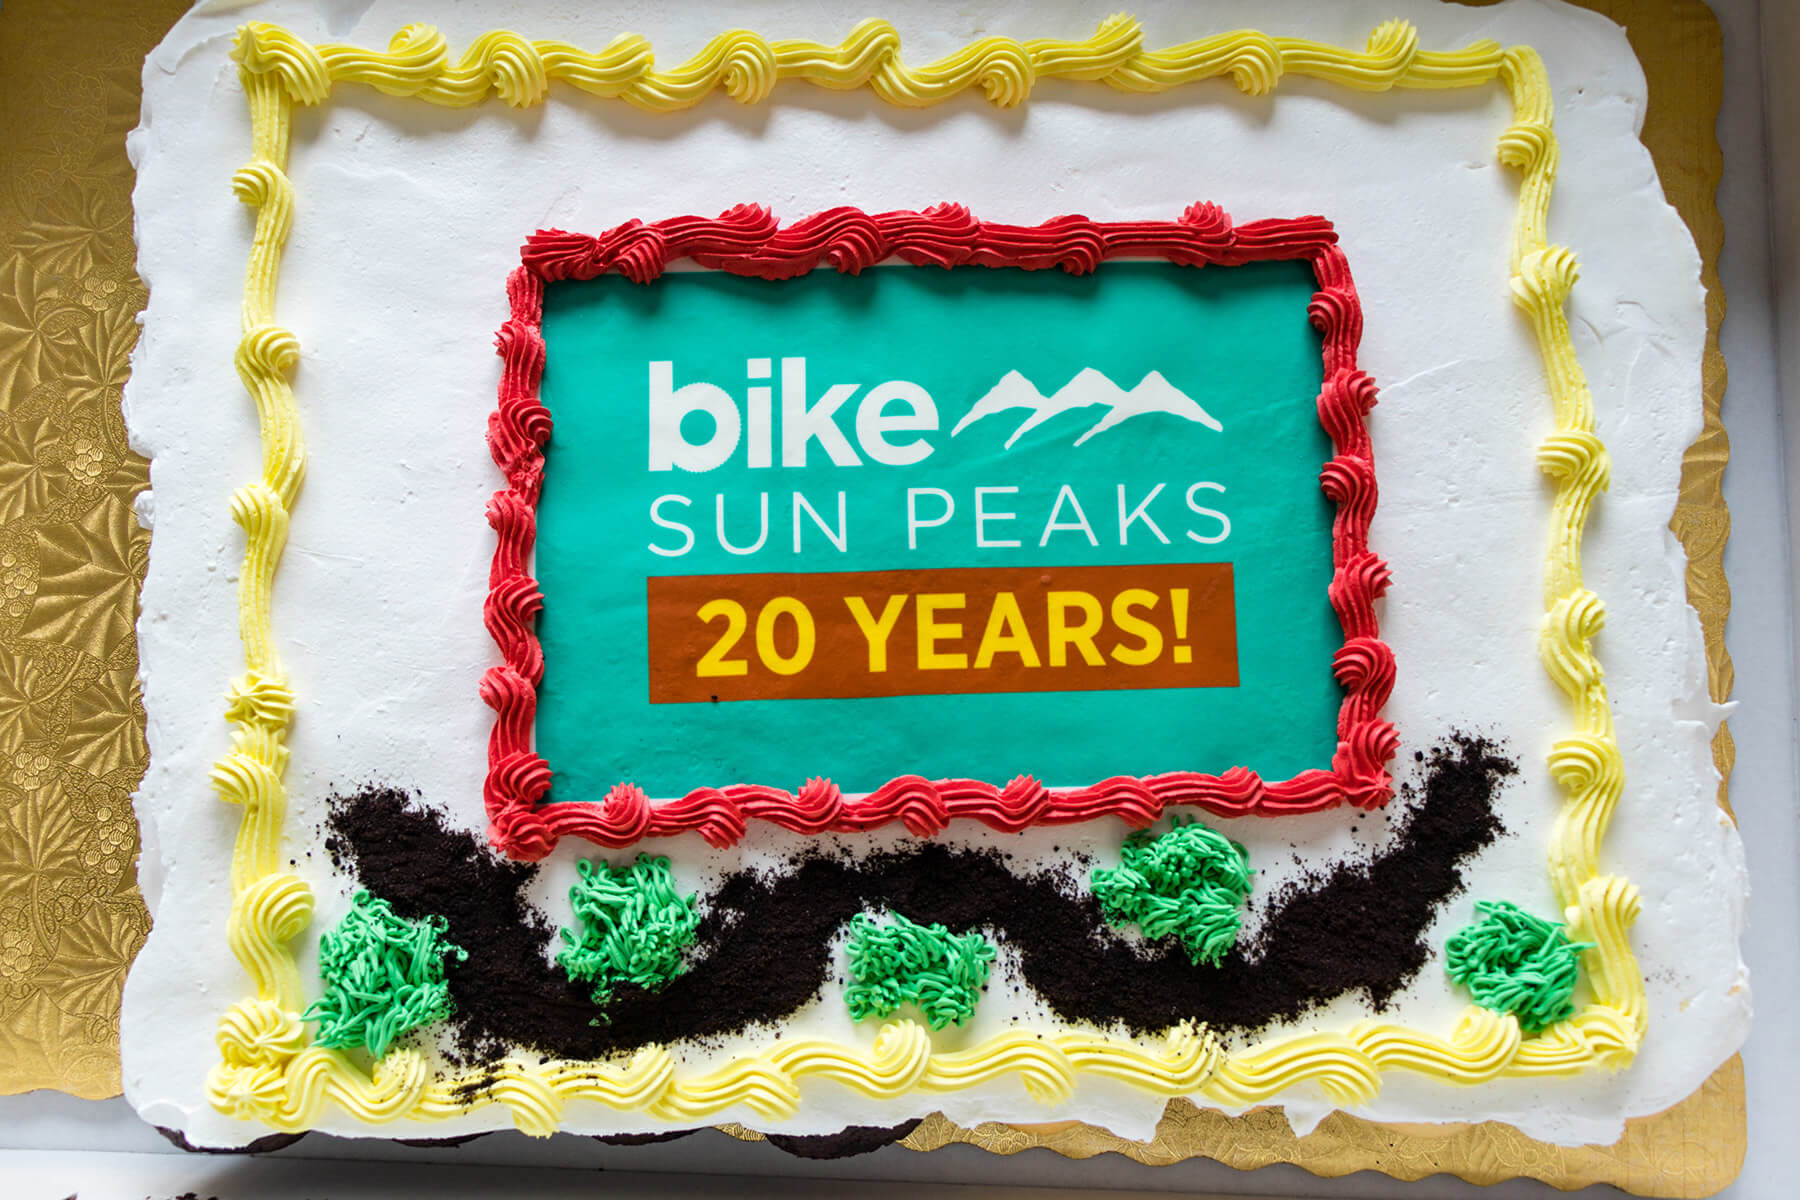 Celebrating 20 Years of the Sun Peaks Bike Park